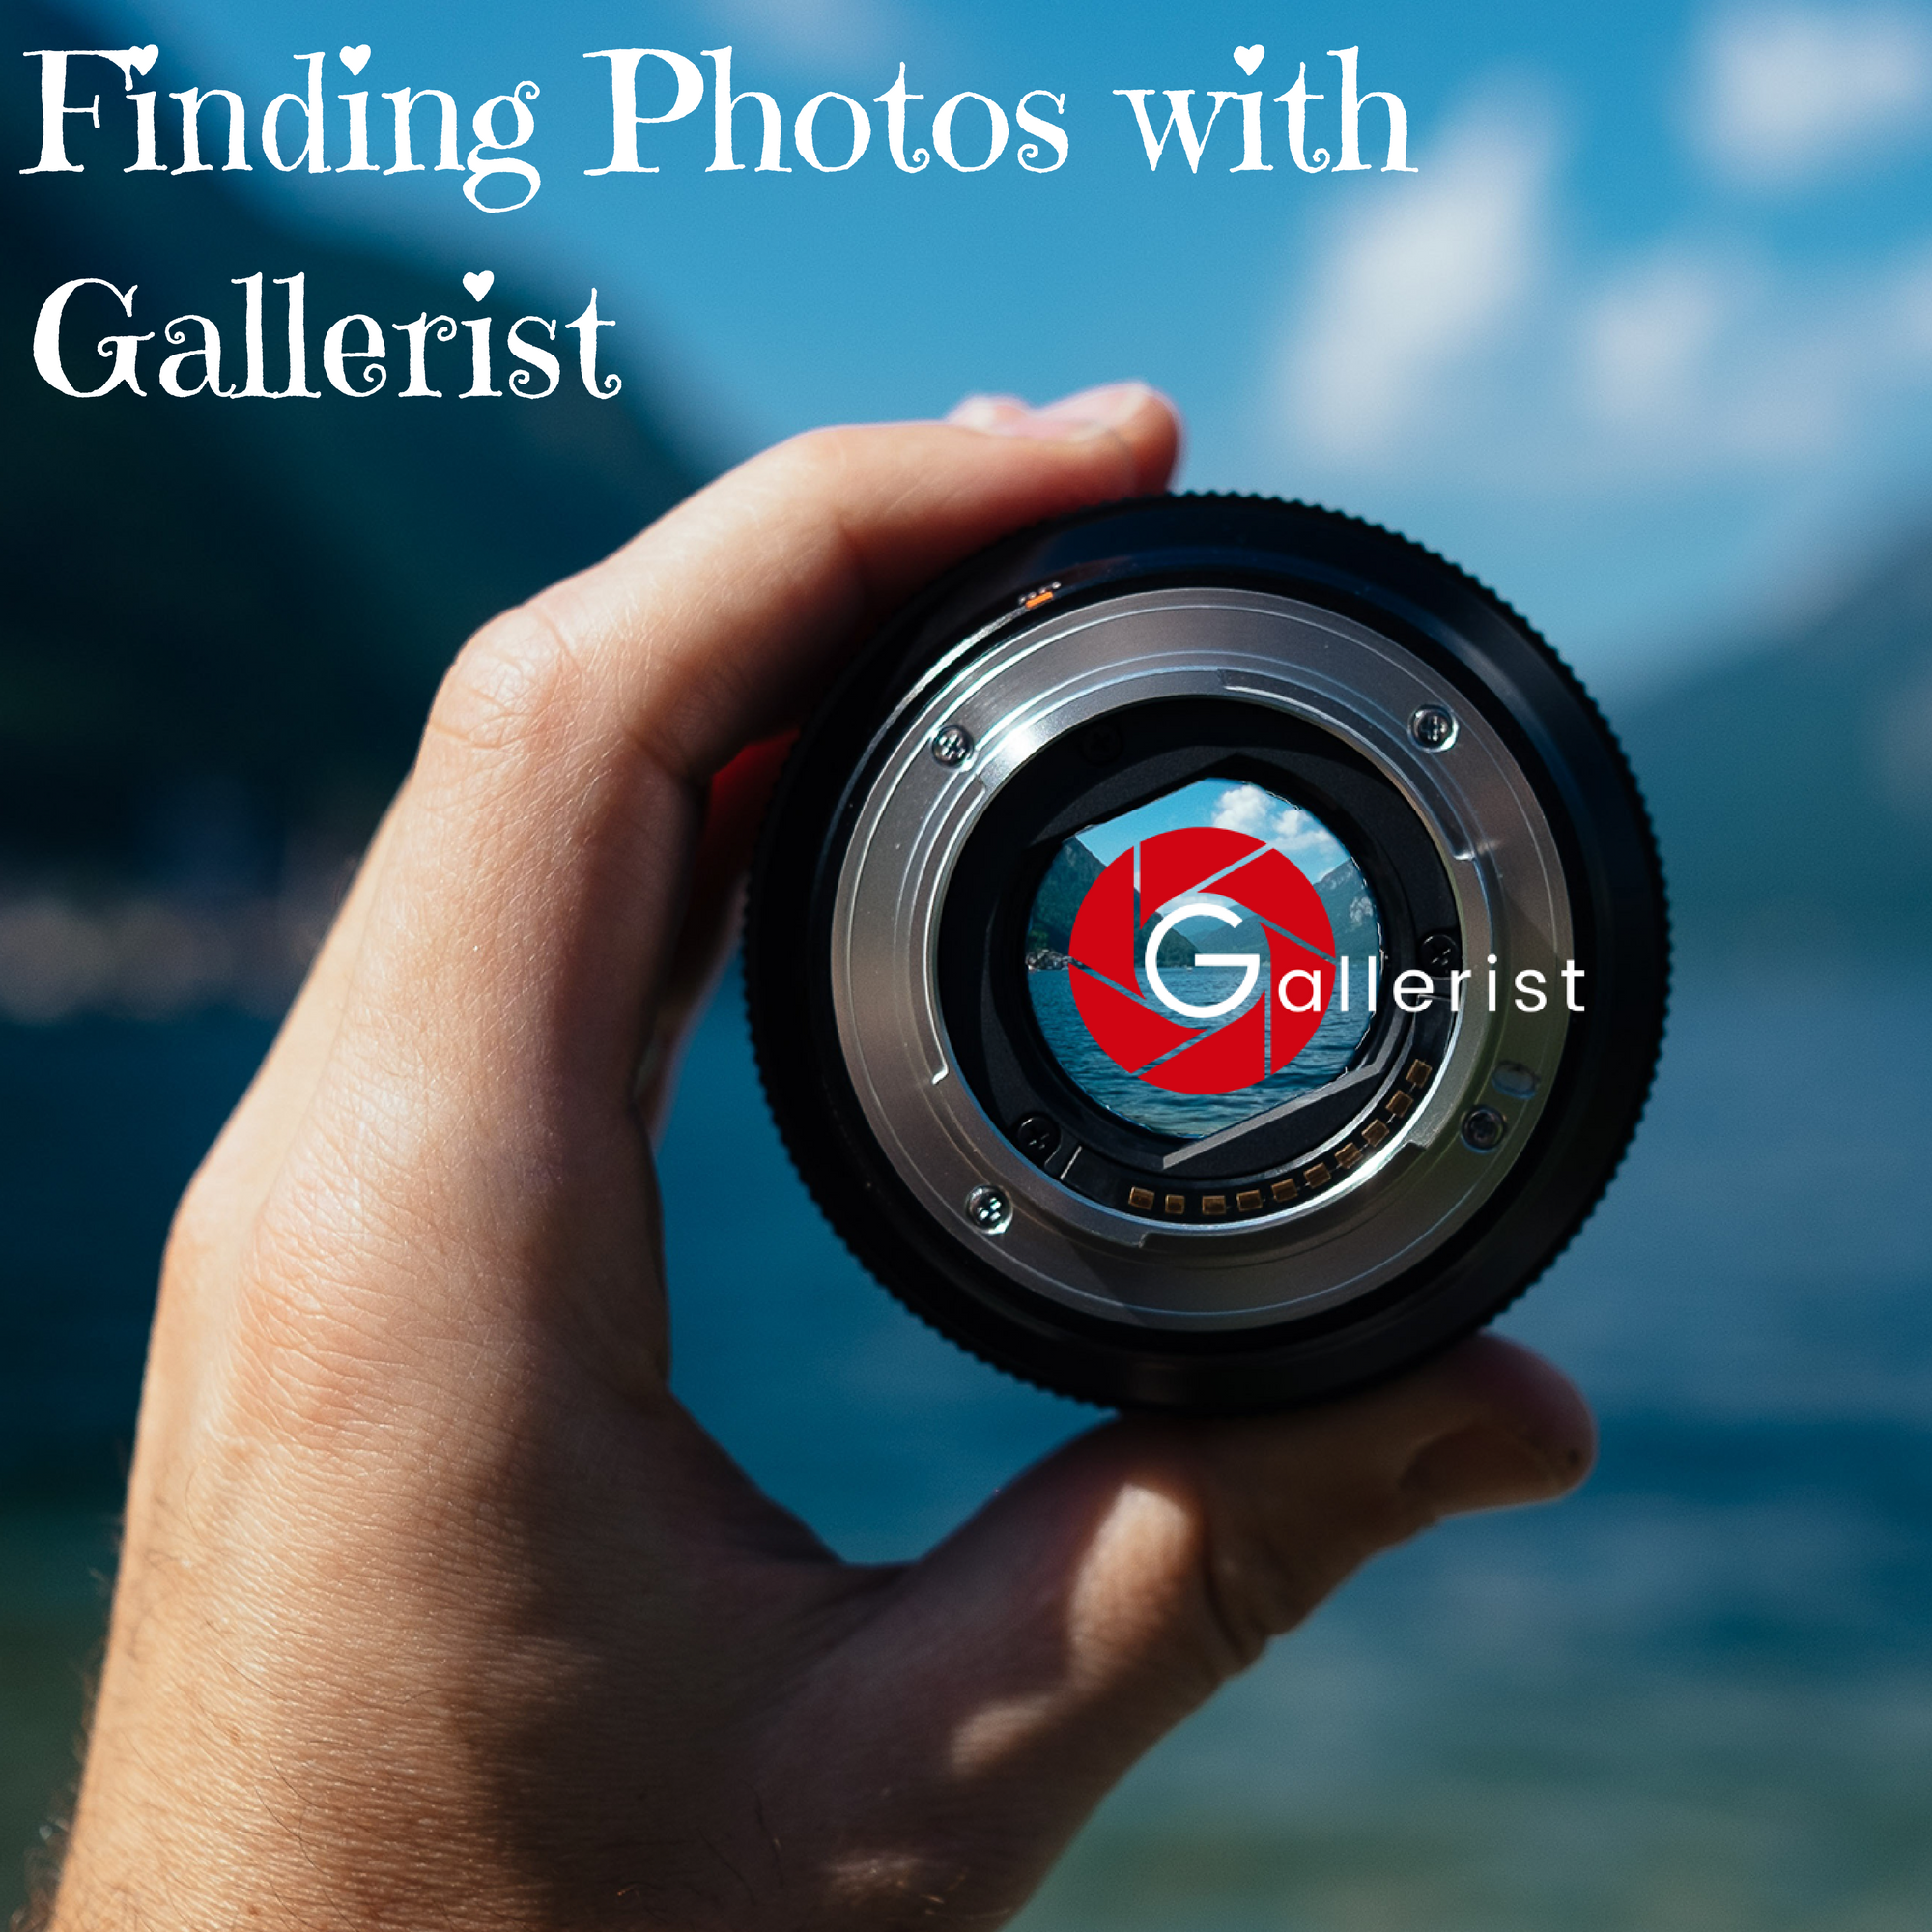 Finding Photos with Gallerist